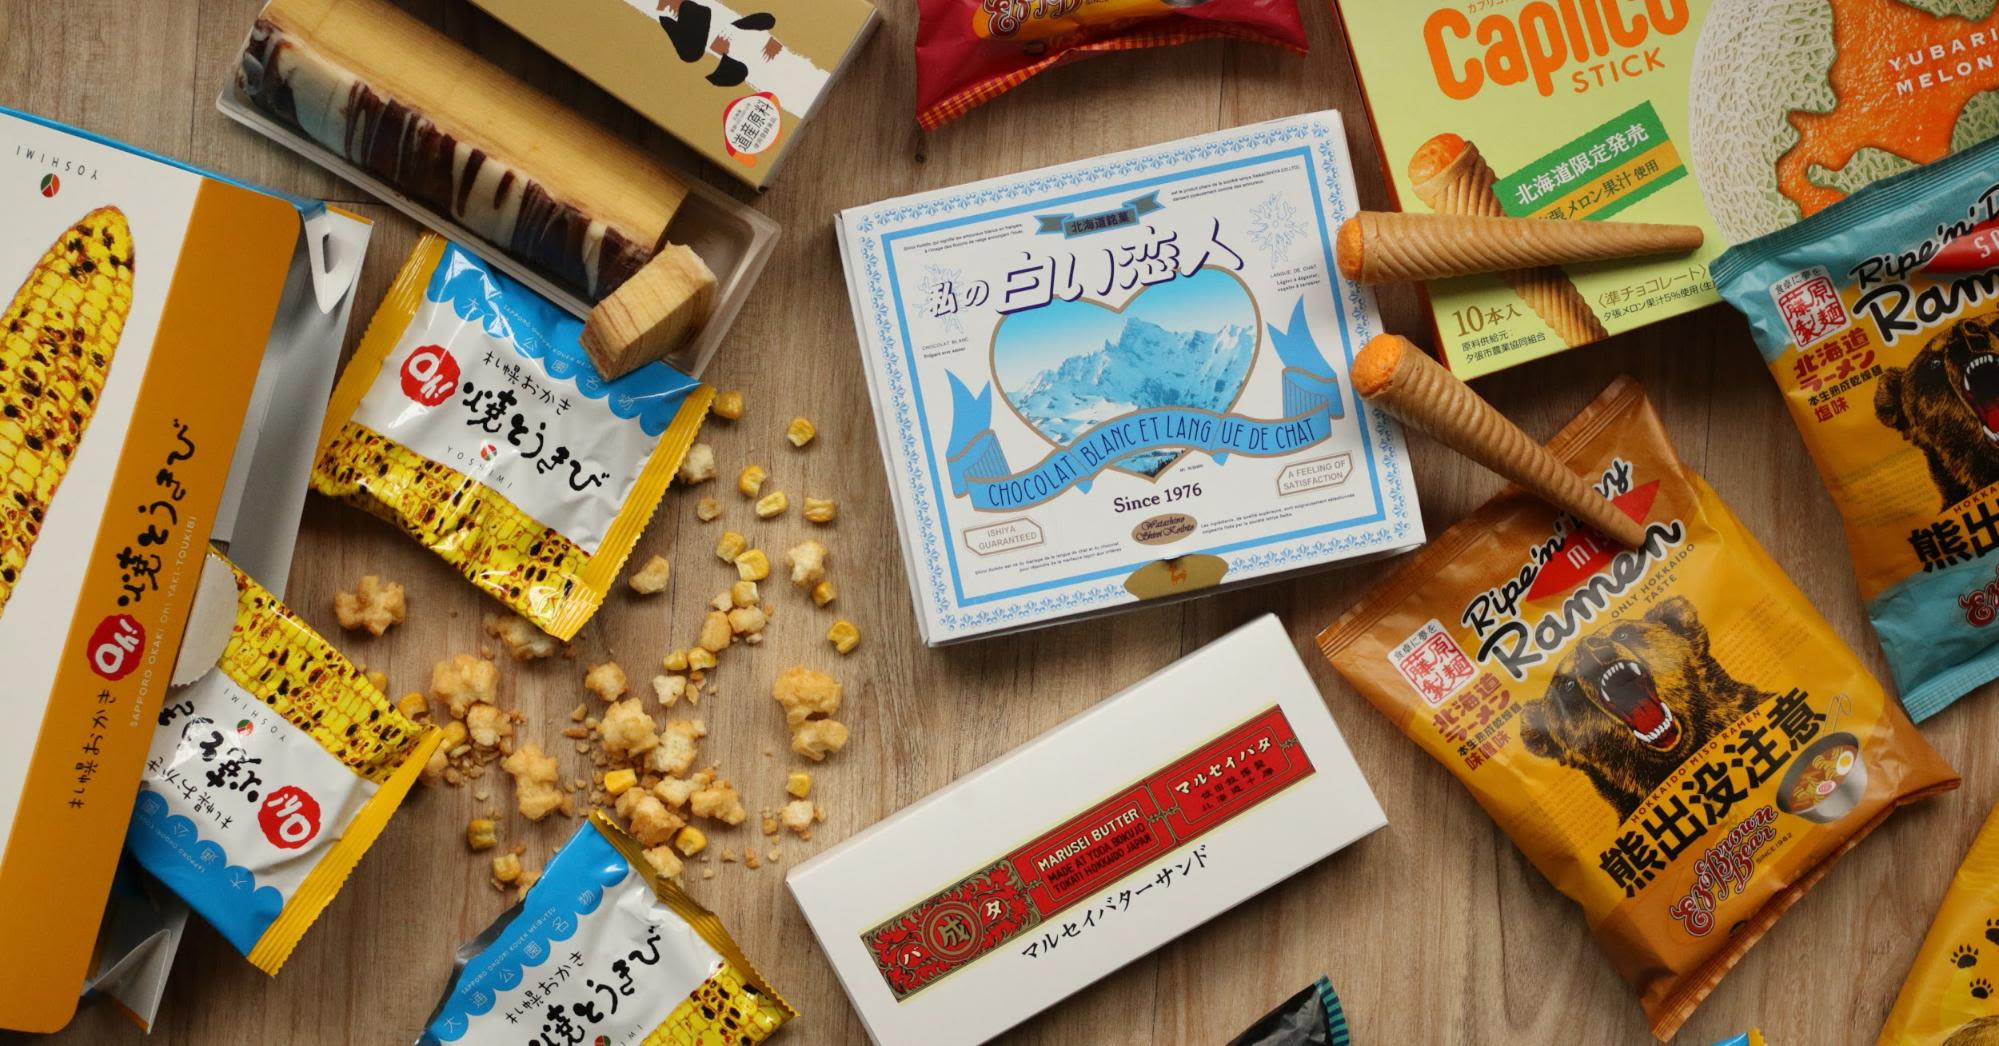 27 Hokkaido Food Souvenirs You'll Gladly Buy Extra Luggage For